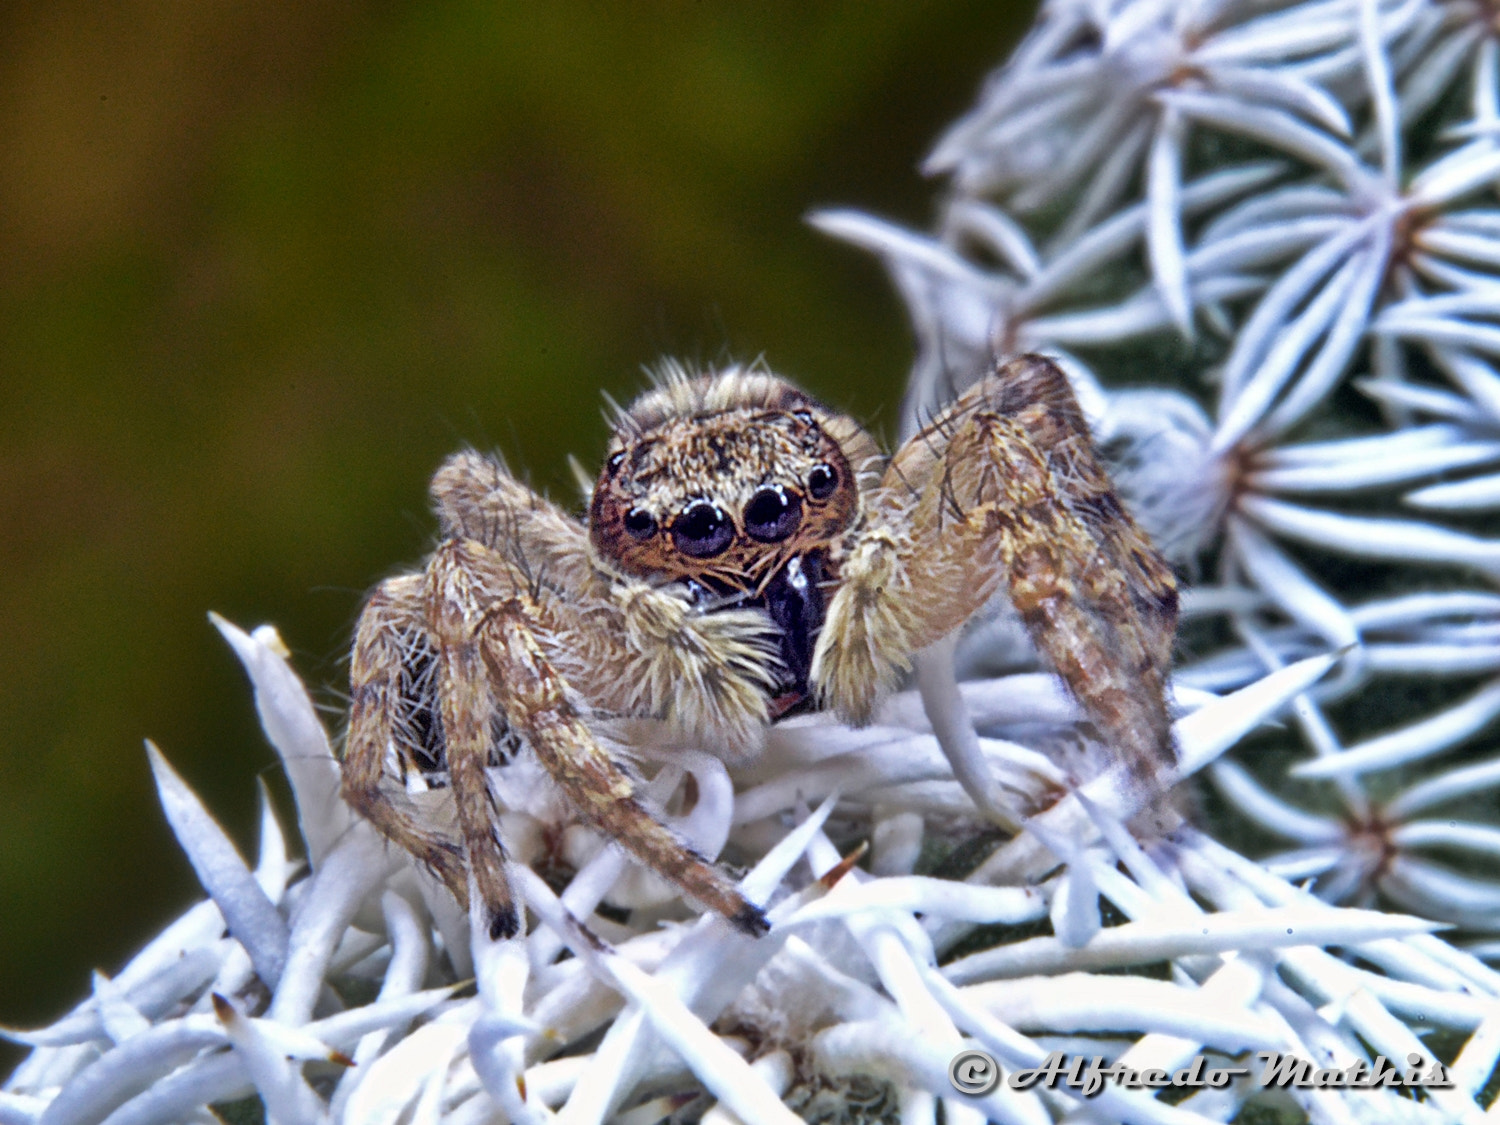 Photograph Aranha saltadora by Alfredo Mathis on 500px